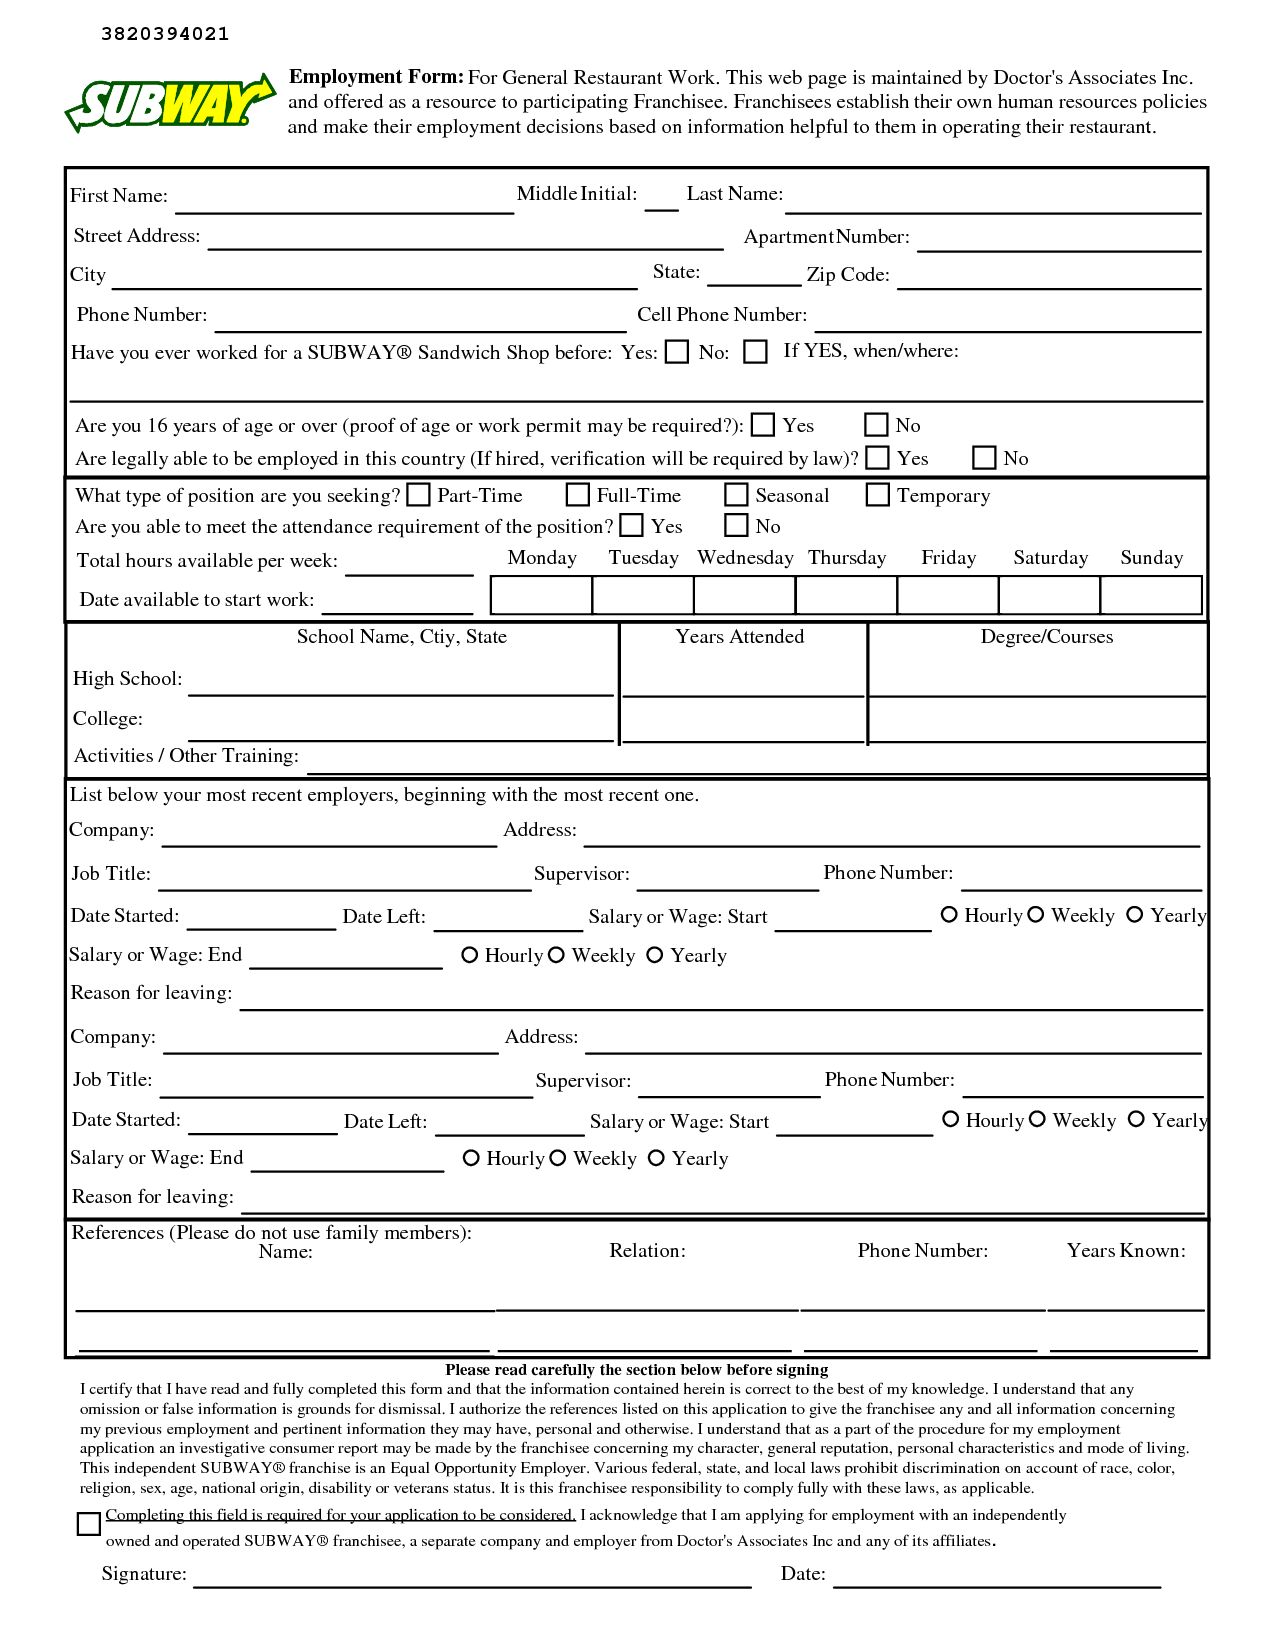 printable subway job application form 222 printable job